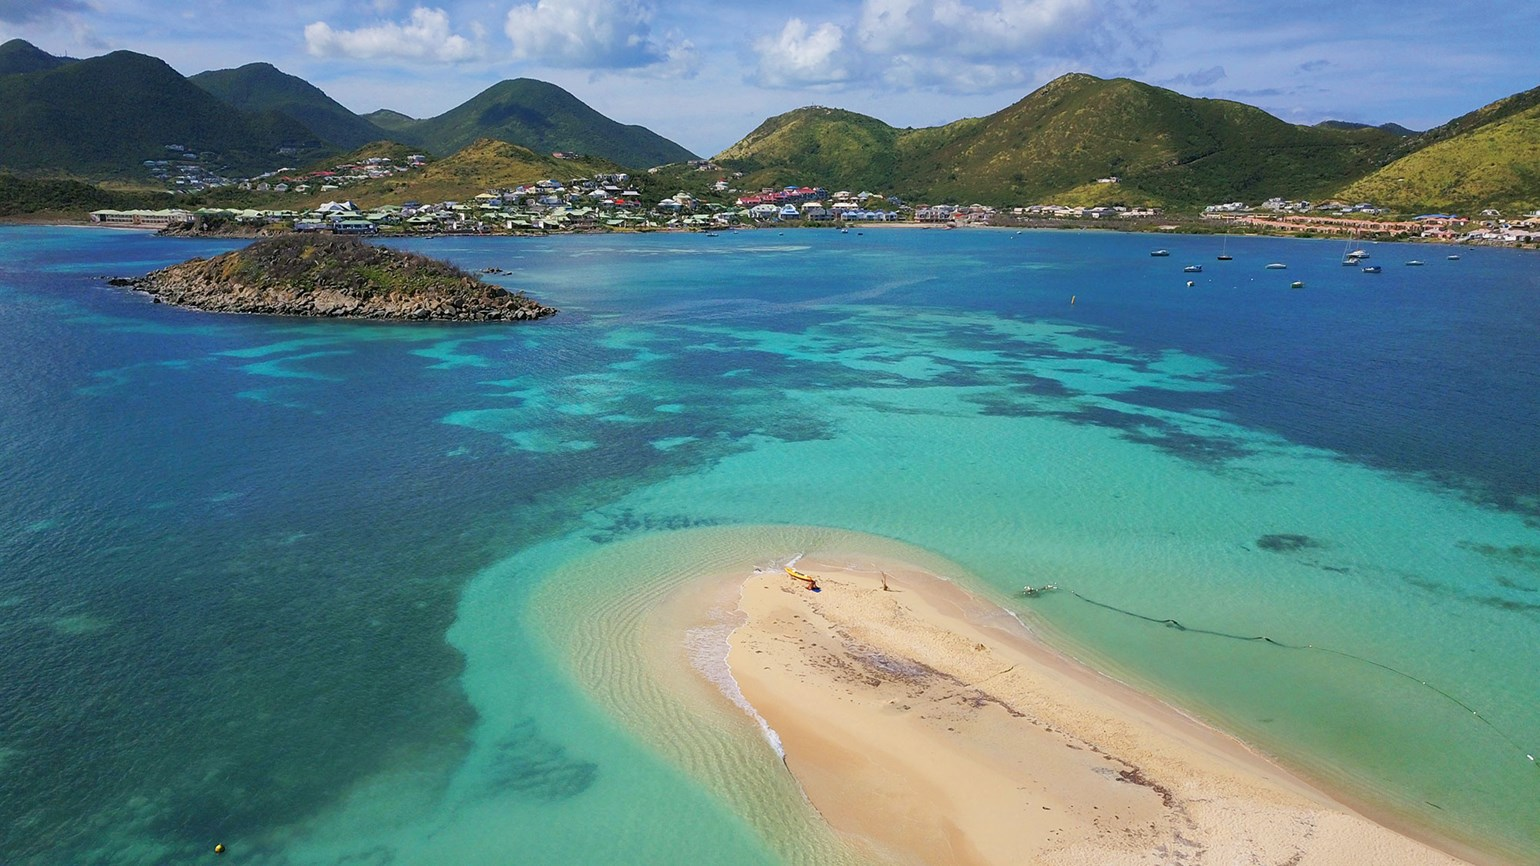 St Maarten updates entry requirements for U.S. tourists